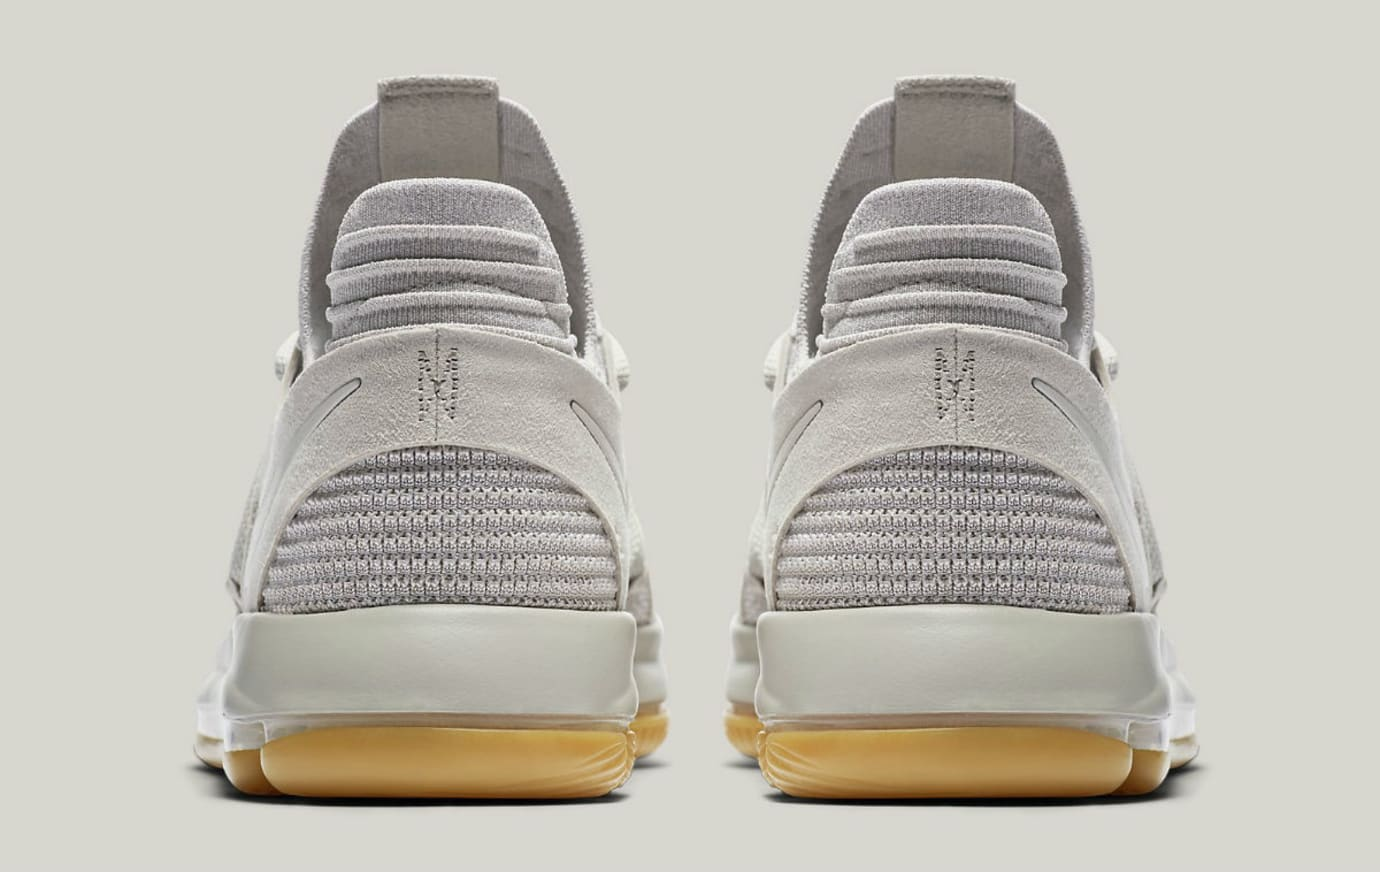 Nike KD 10 Pale Grey Light Bone Gum Release Date Heel 897817-001